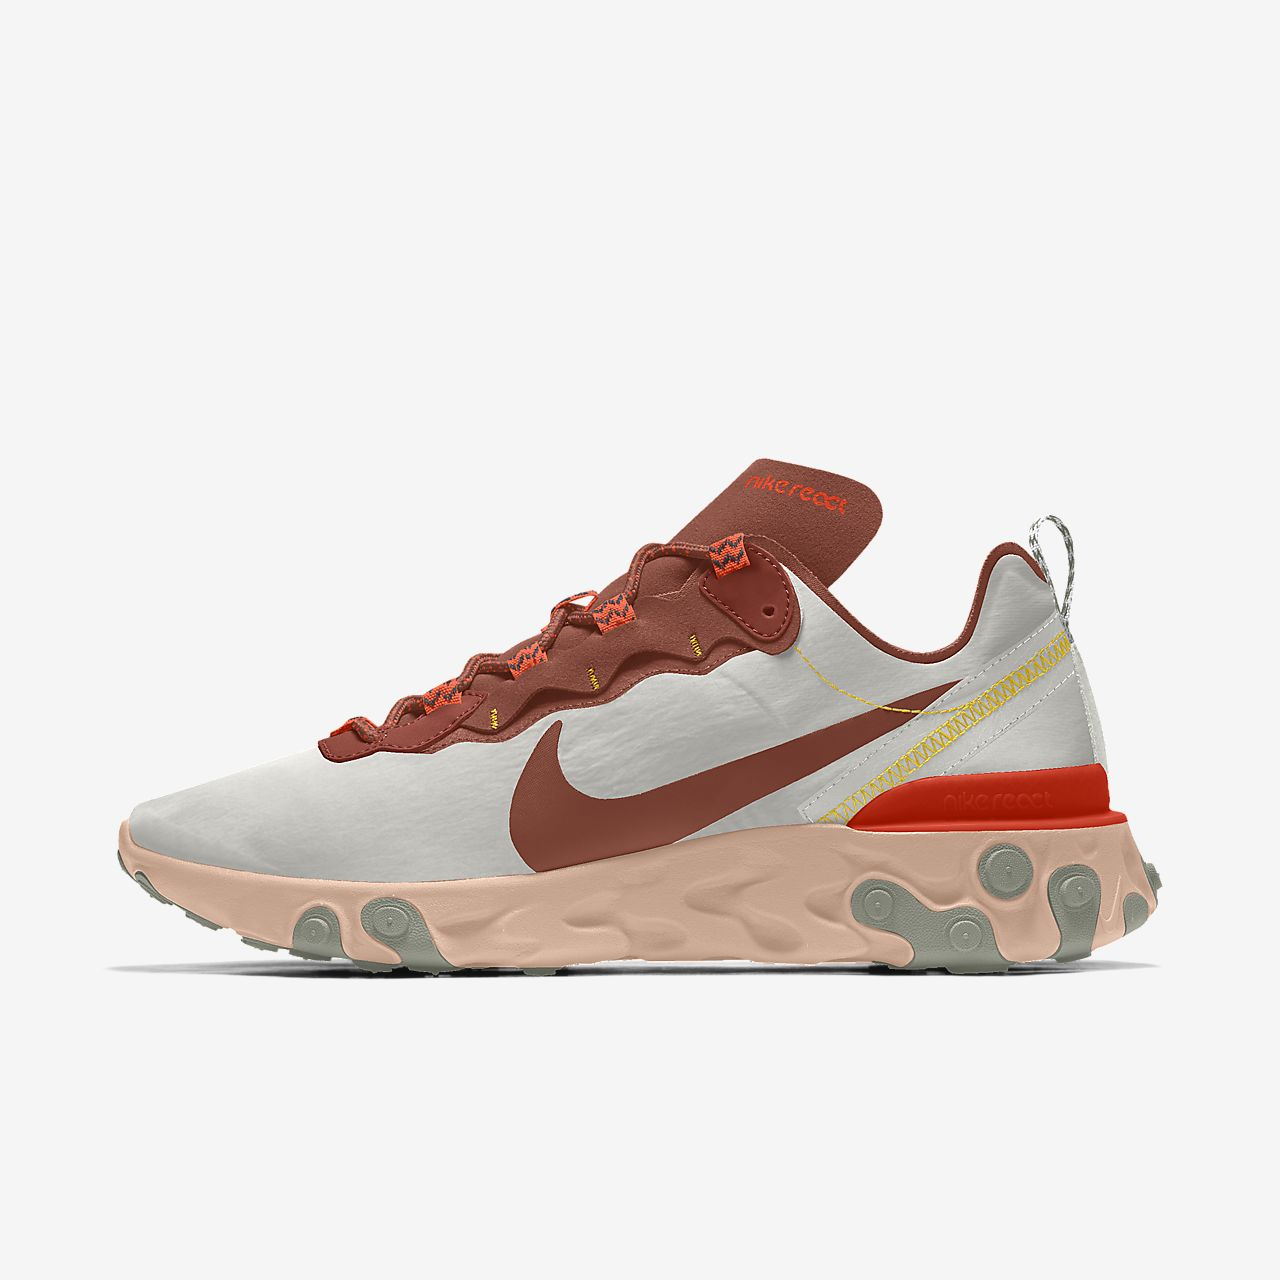 Chaussure personnalisable Nike React 55 Premium By You pour Homme